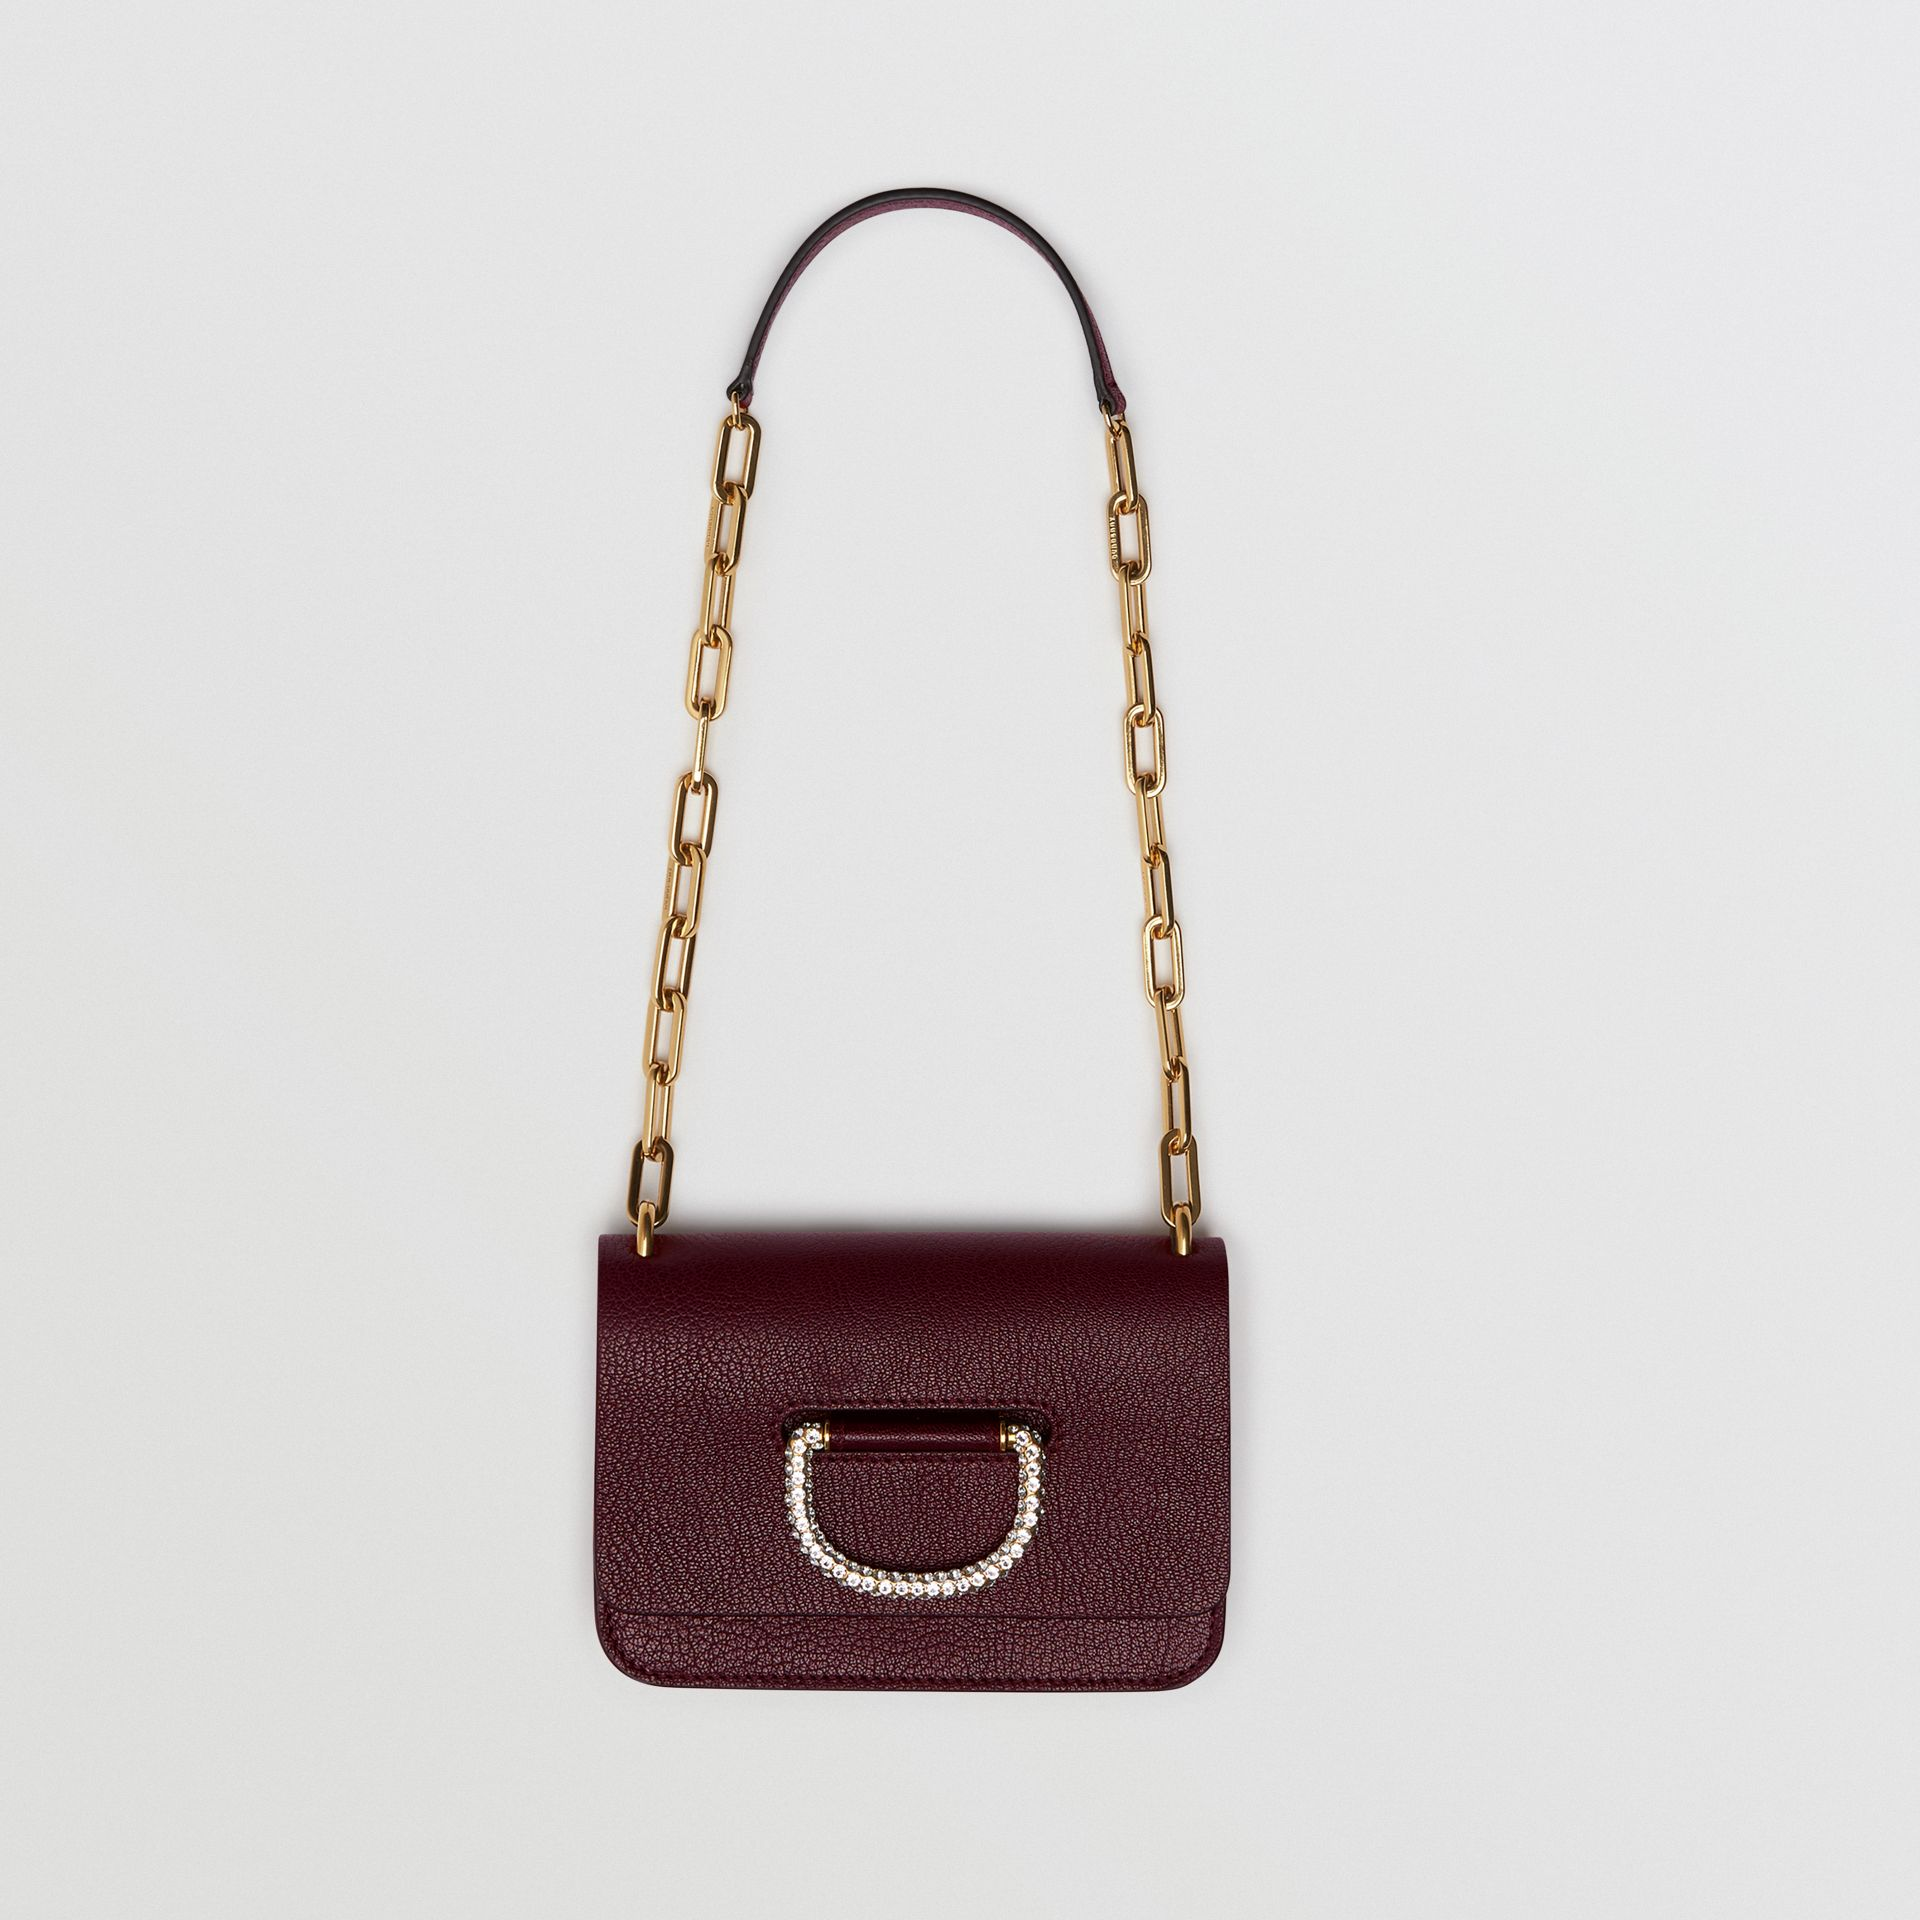 Borsa The D-ring mini in pelle con cristalli (Rosso Violetto Intenso) - Donna | Burberry - immagine della galleria 2